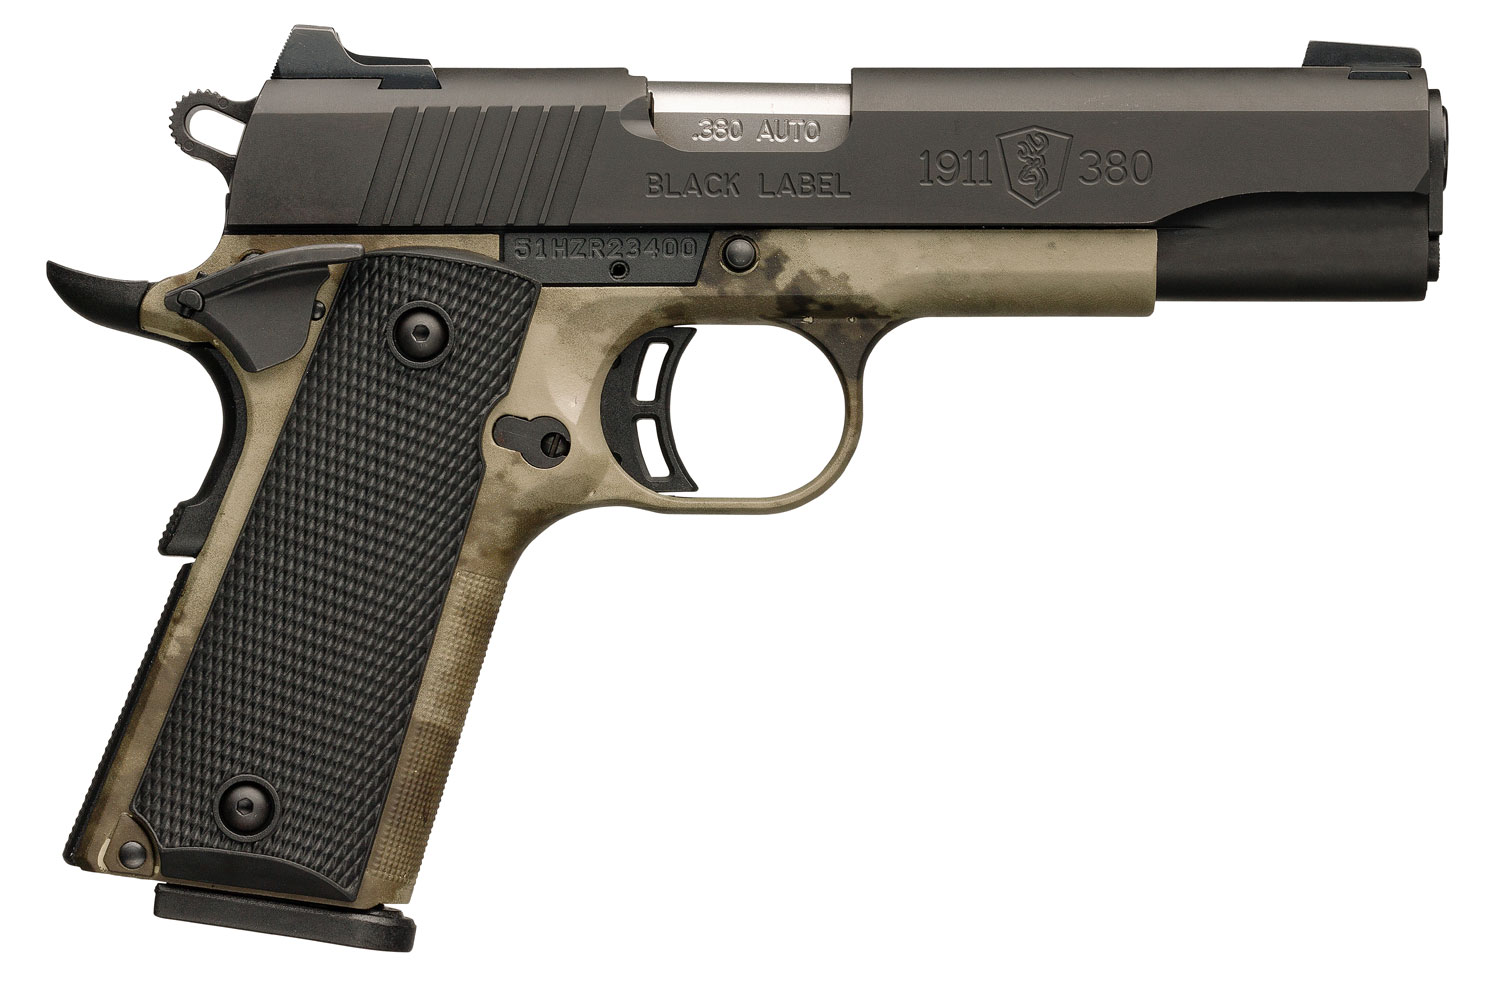 Browning 051938492 1911-380 Black Label Pro Speed Single 380 Automatic Colt Pistol (ACP) 4.25